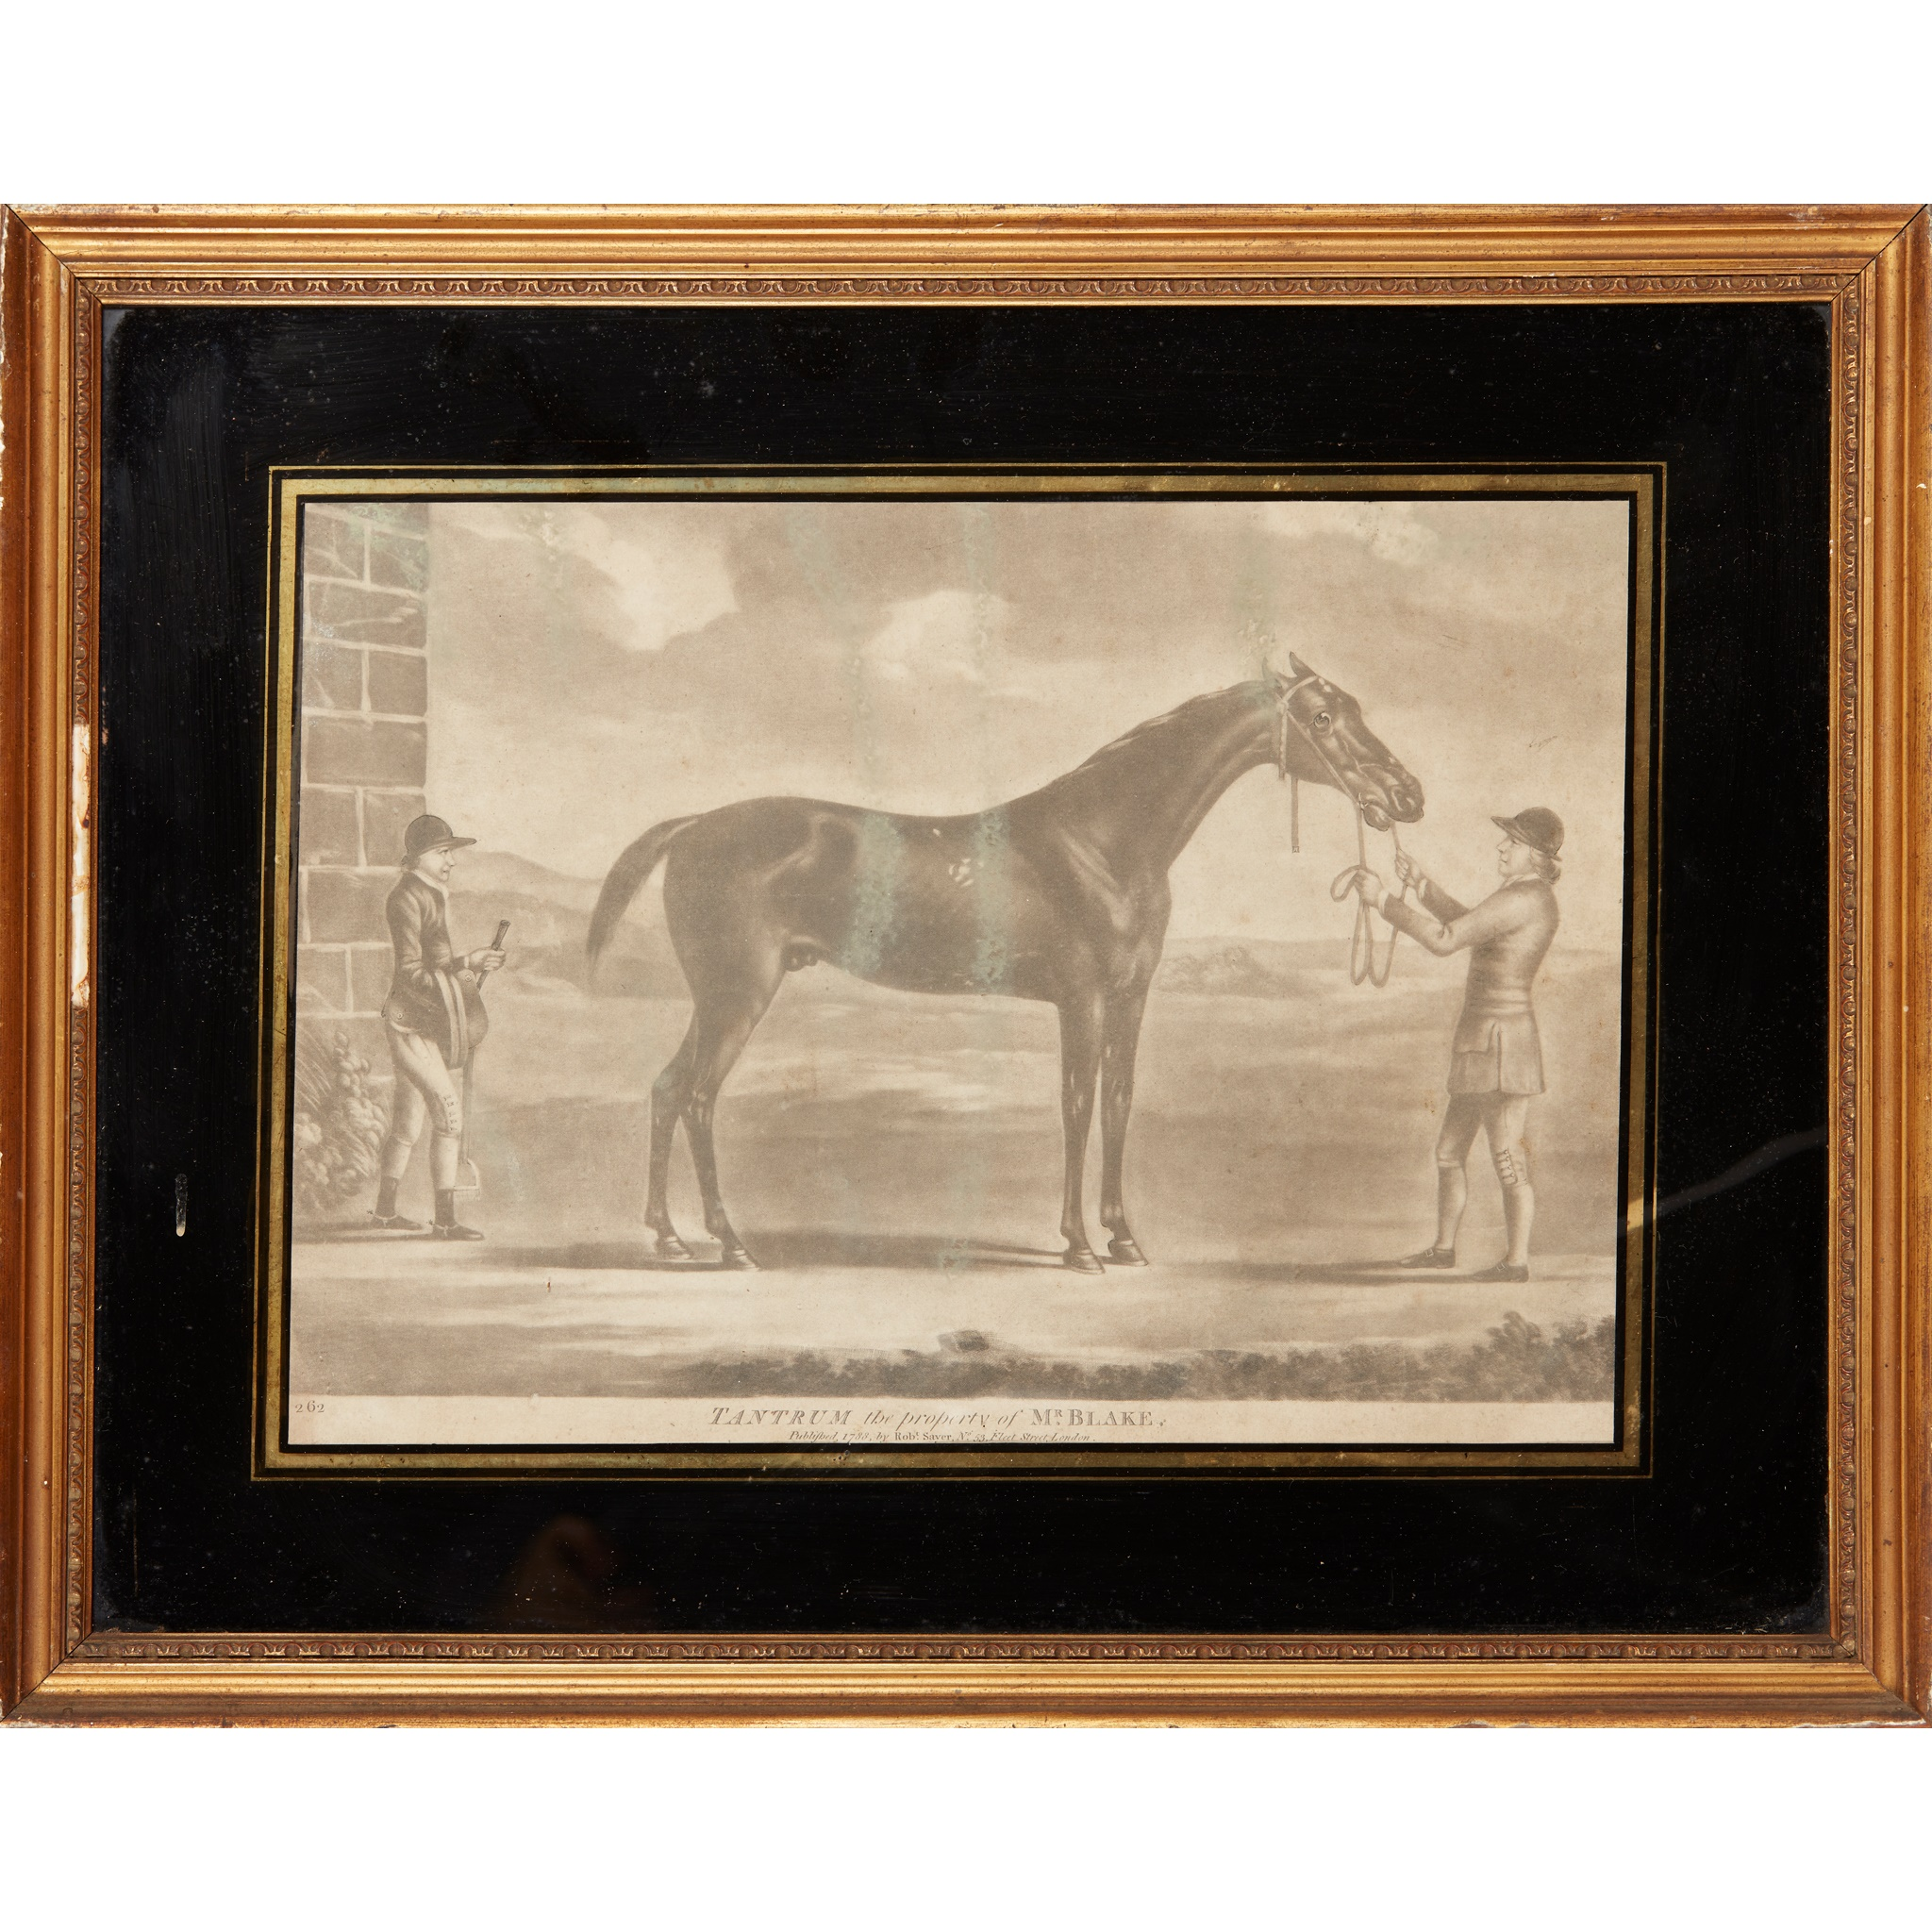 COLLECTION OF ELEVEN MEZZOTINT EQUESTRIAN PRINTS LATE 18TH CENTURY - Image 3 of 8